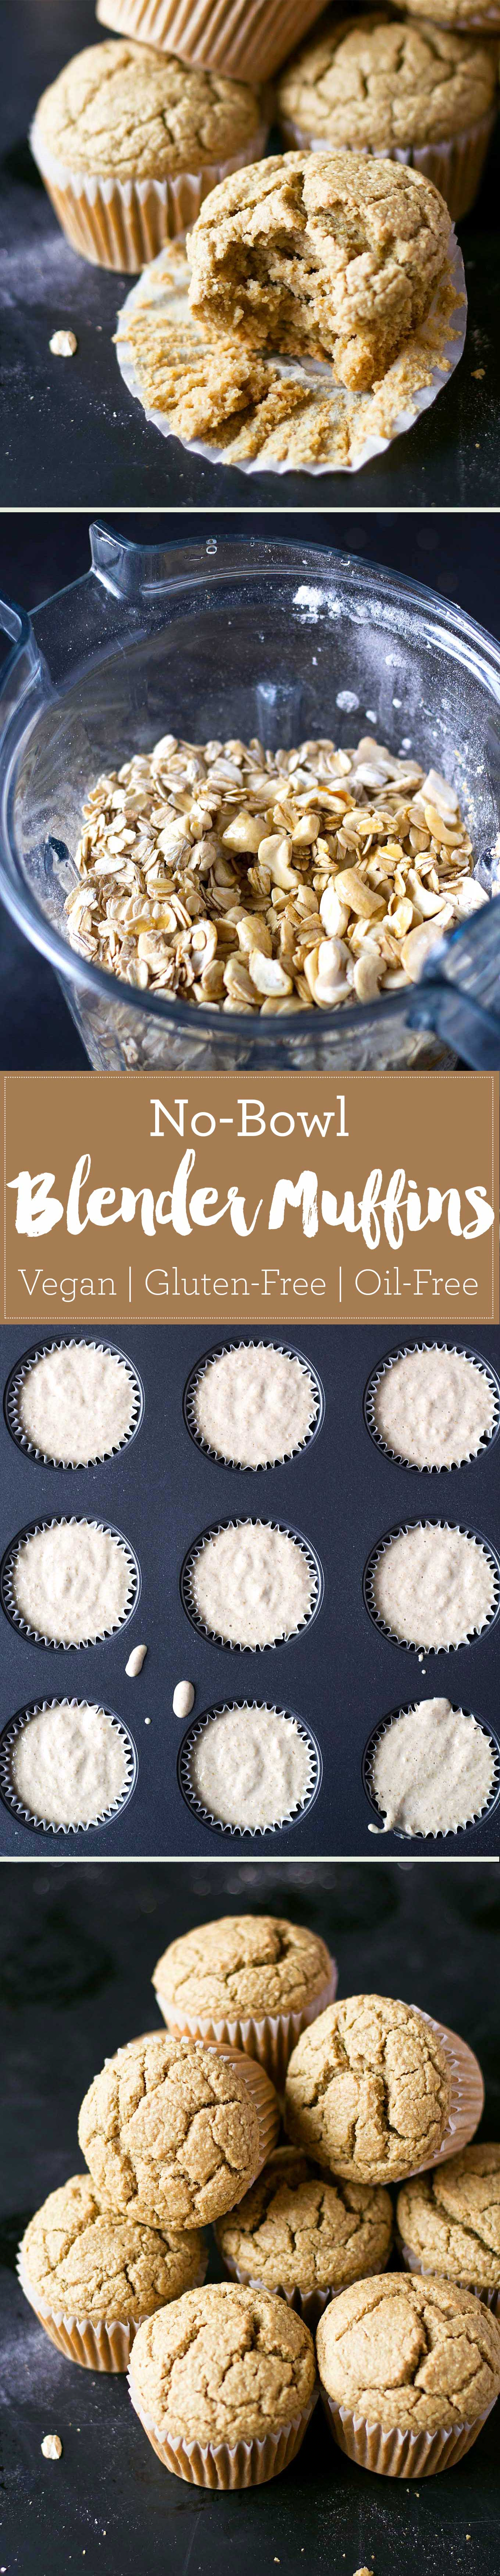 These vegan blender muffins are healthy and so easy to make! Oil-free, gluten-free, and super soft!   https://eatwithinyourmeans.com